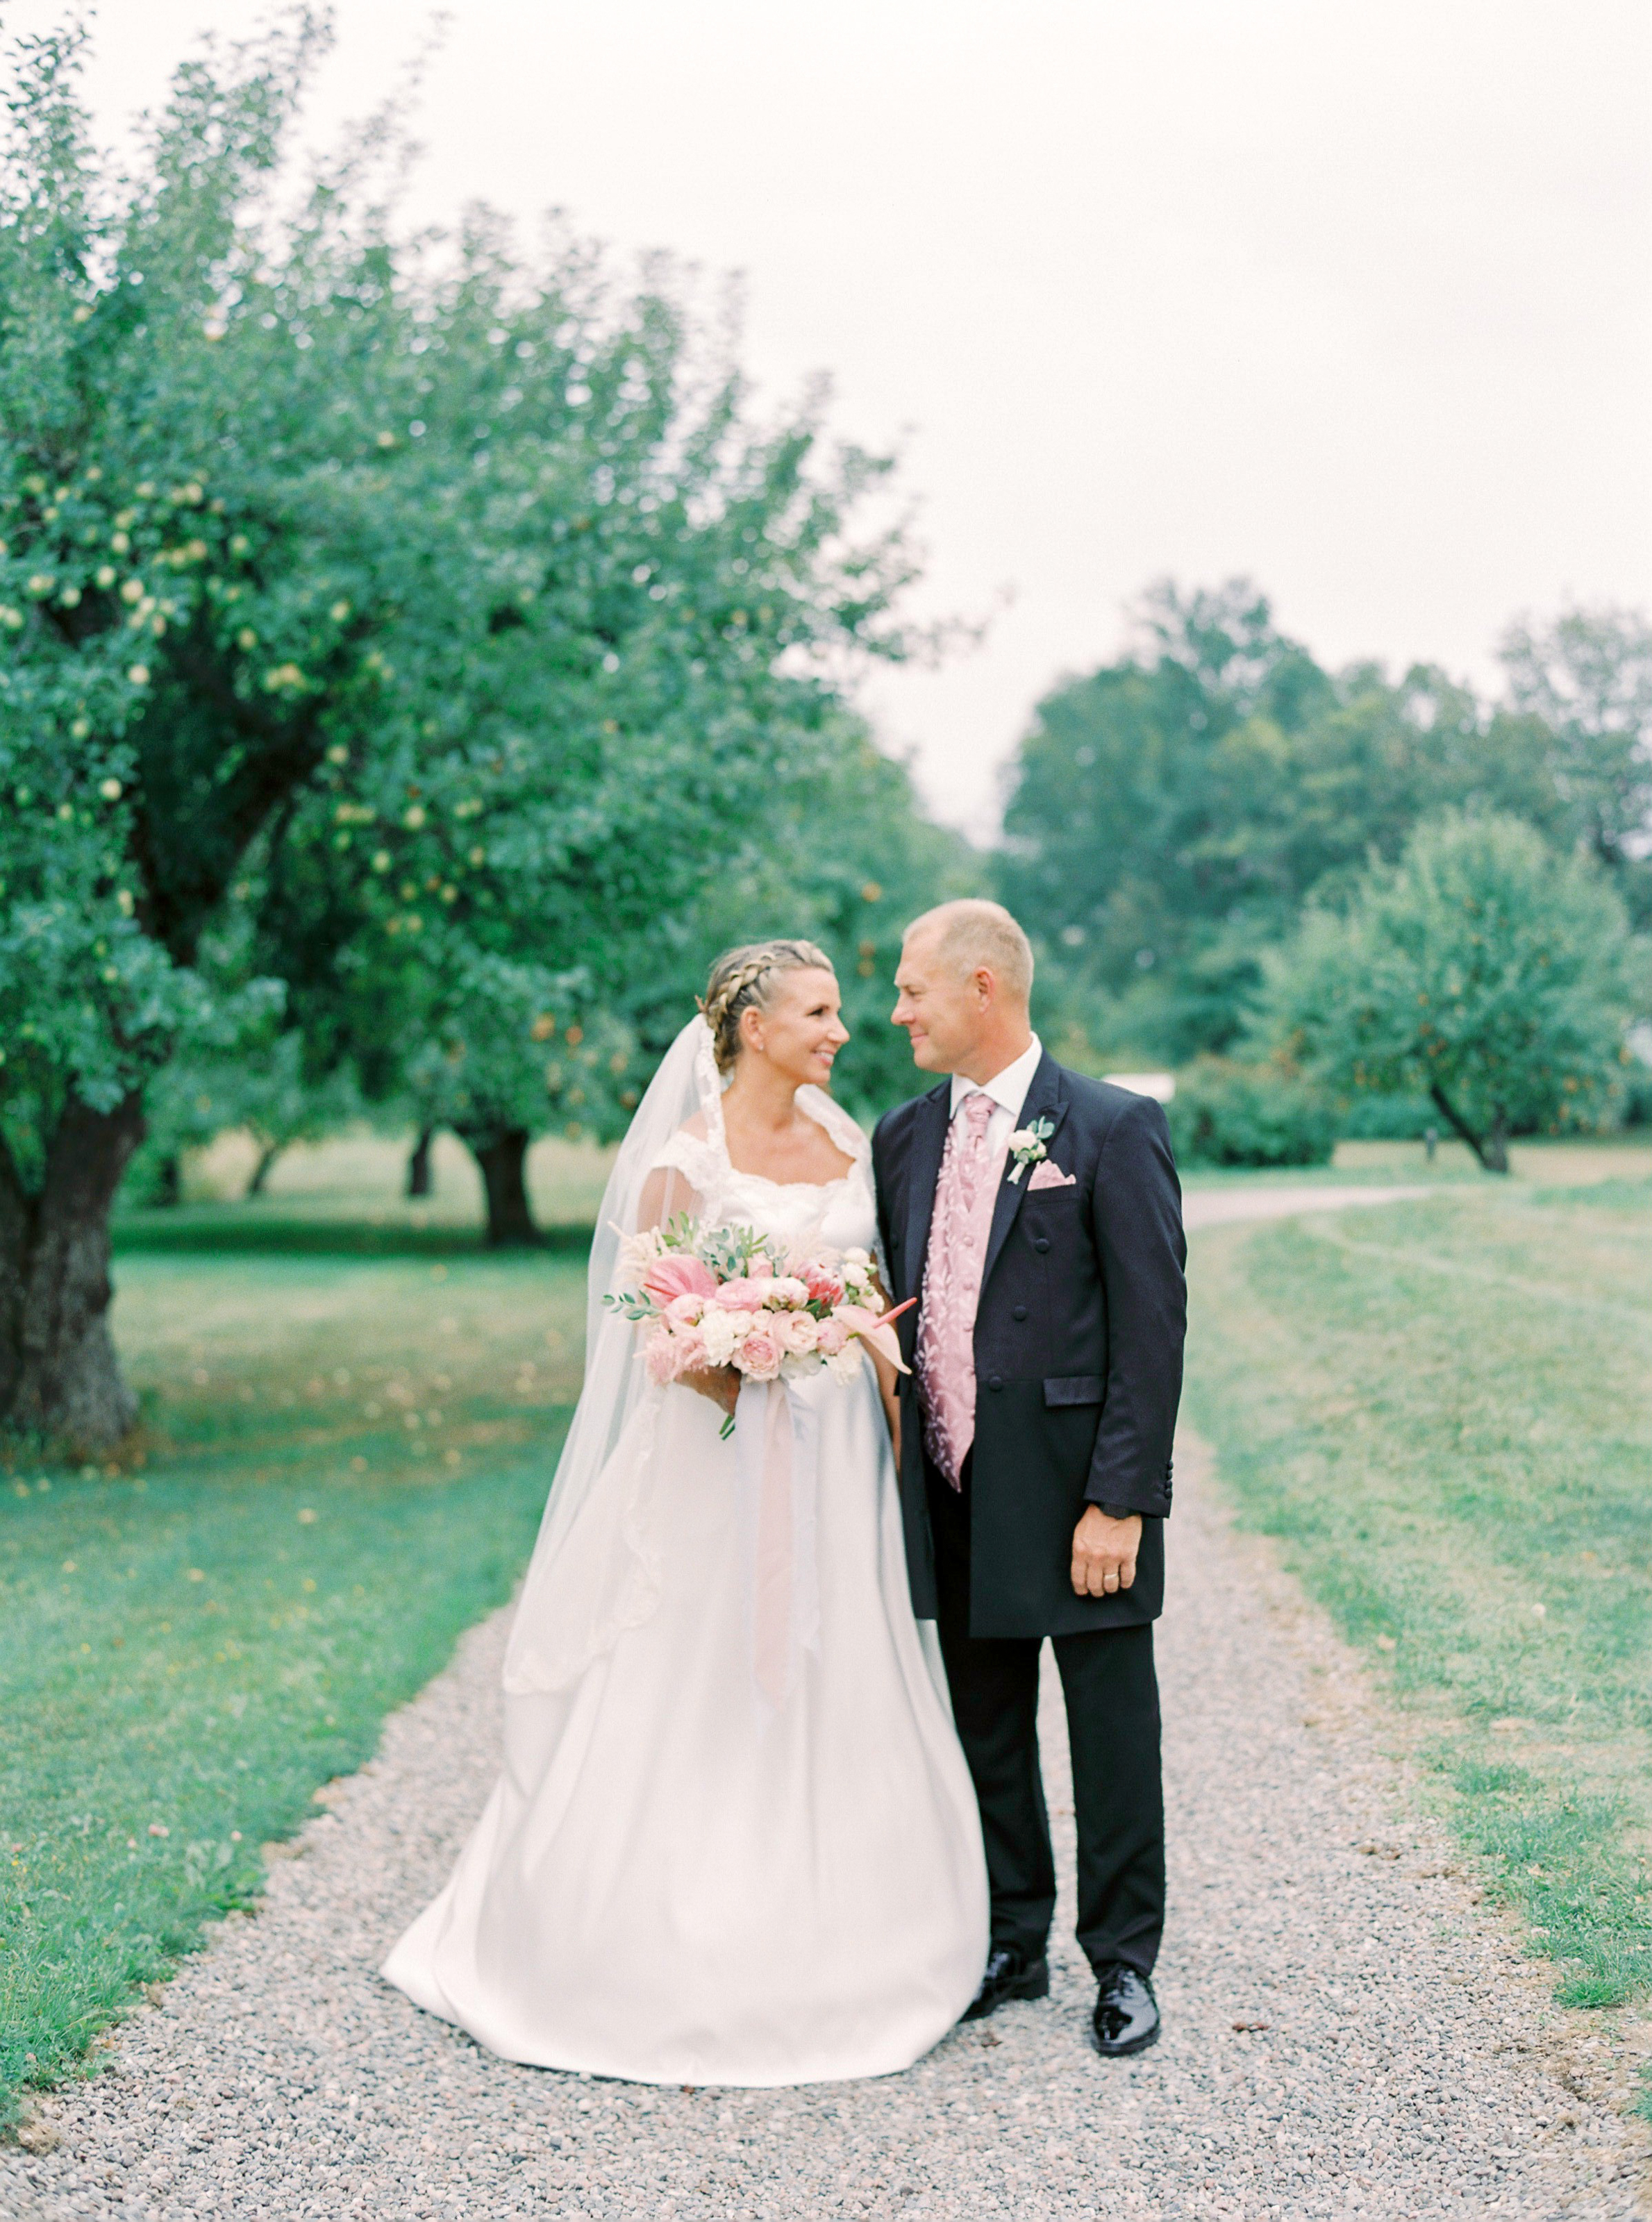 2BridesPhotography_Osbjer_Wedding_0154